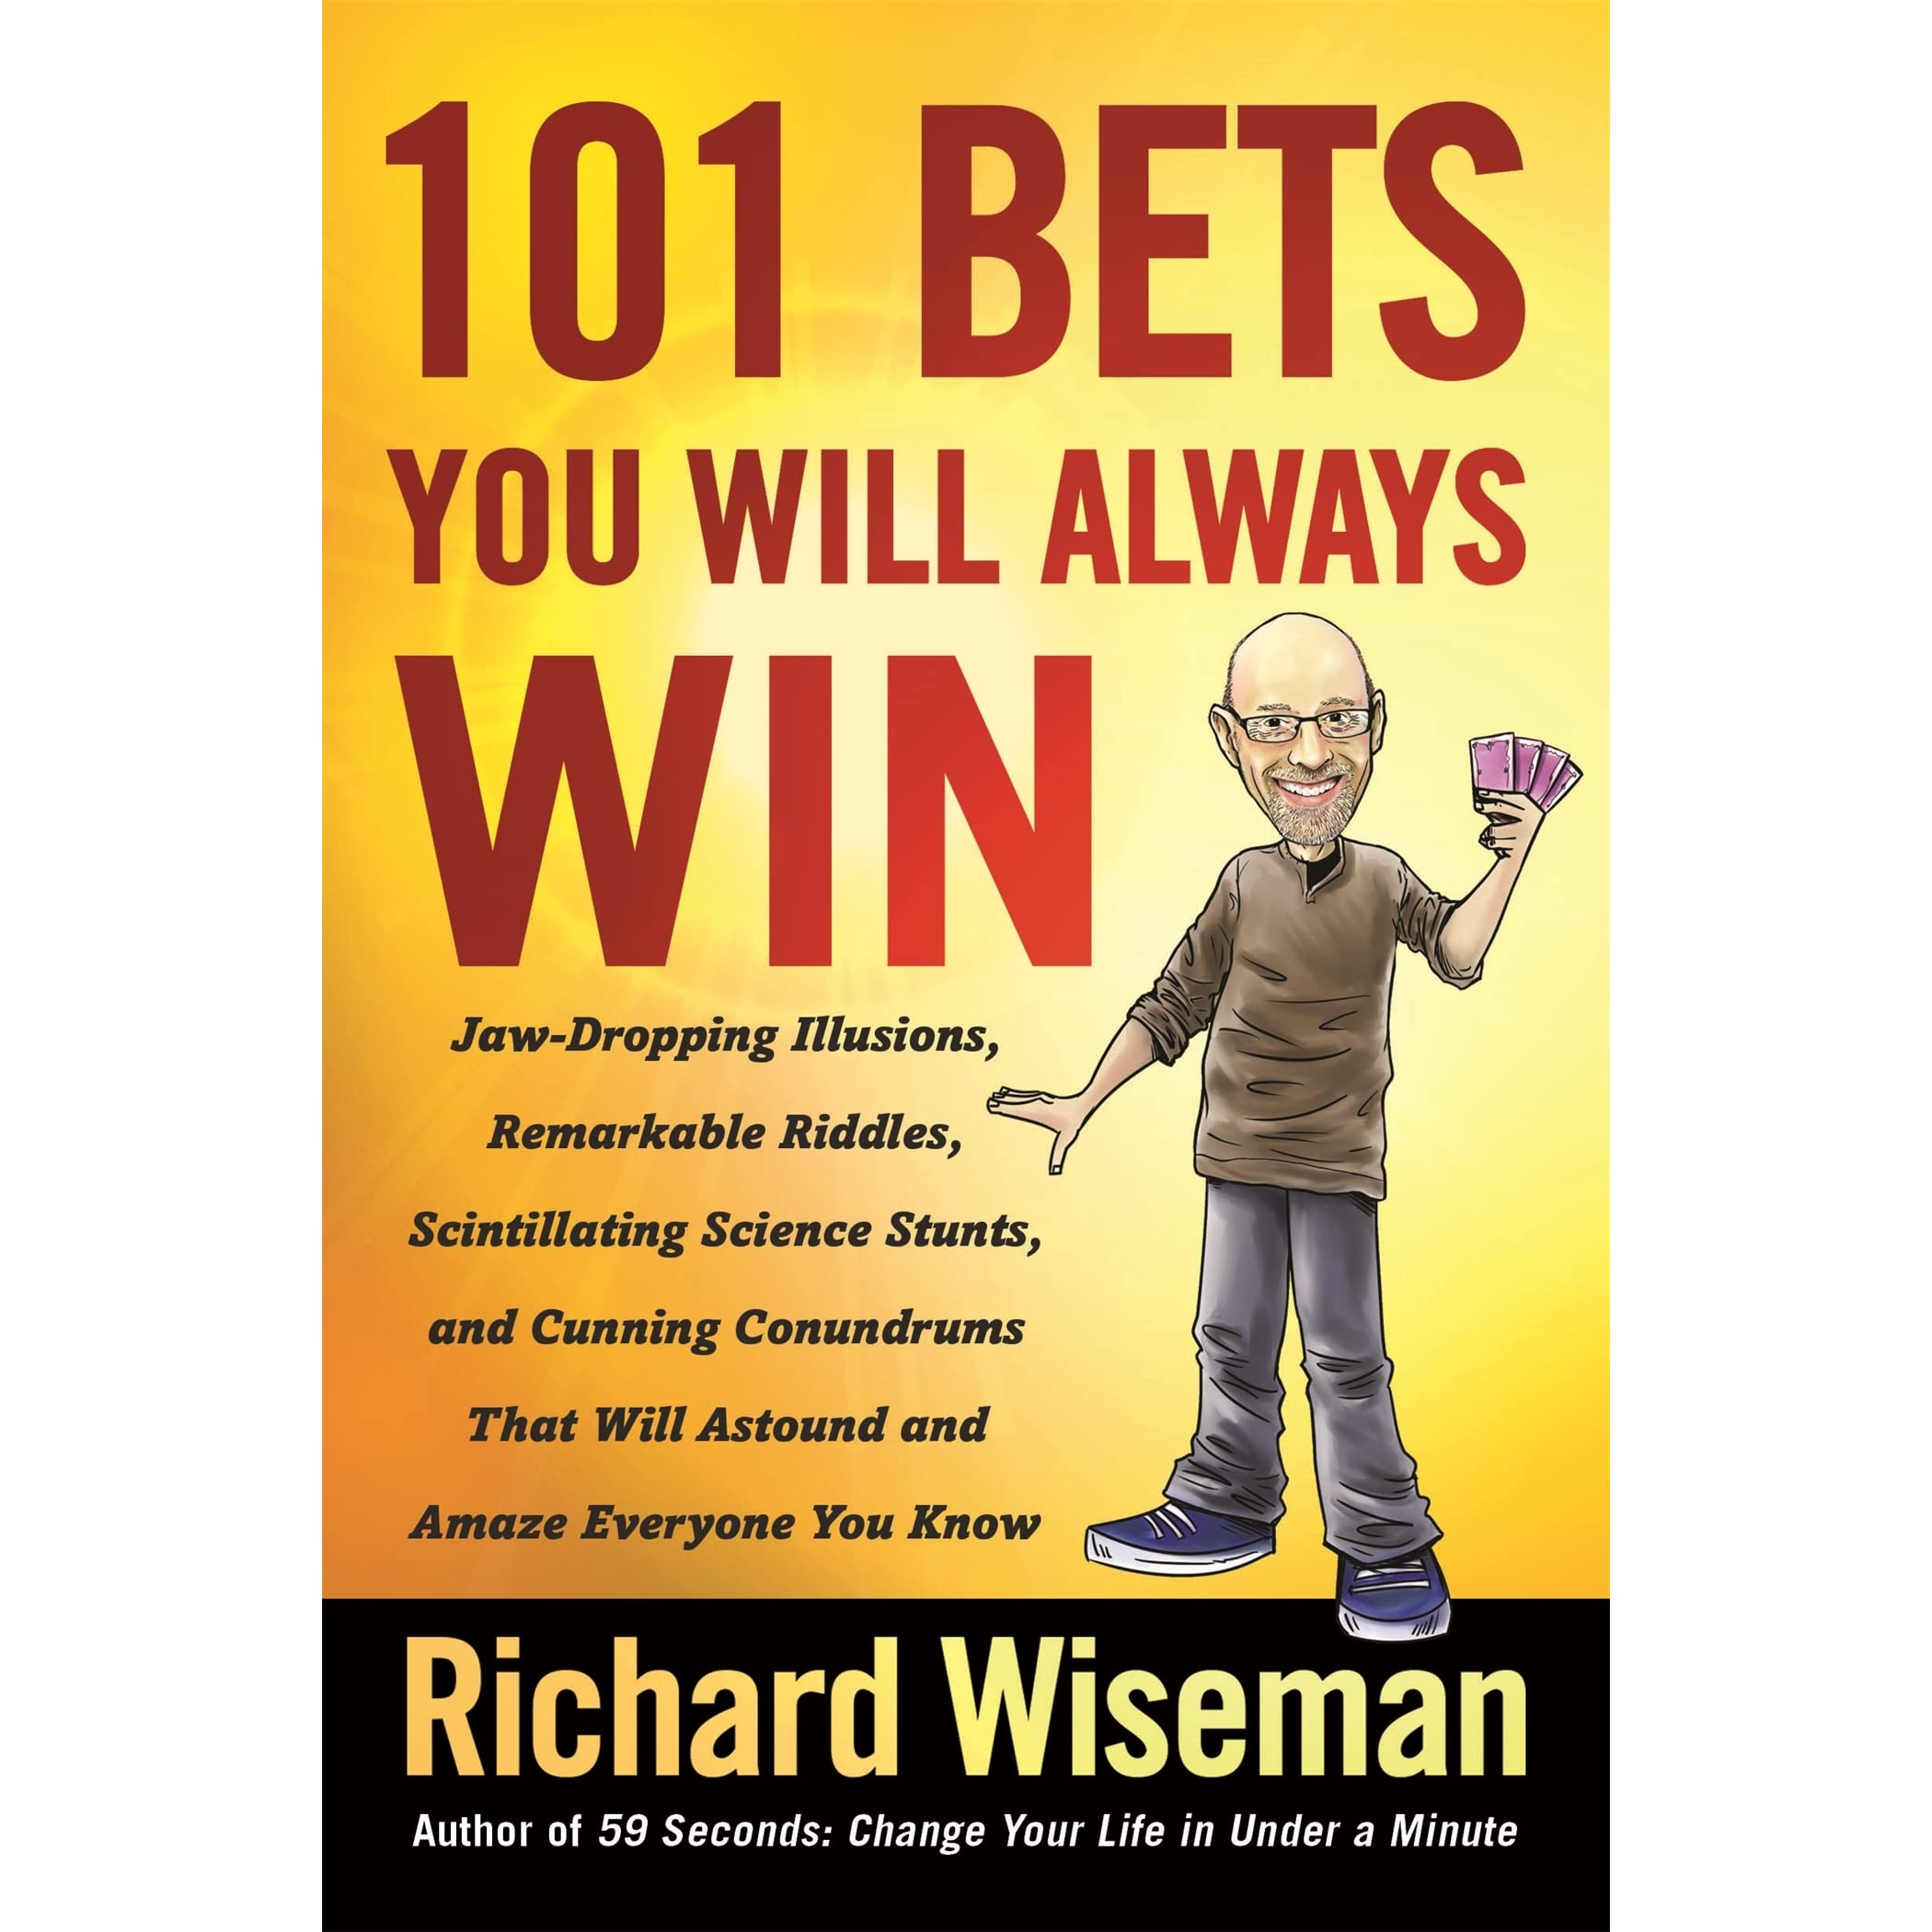 59 Seconds Richard Wiseman 101 bets you will always win: jaw-dropping illusions